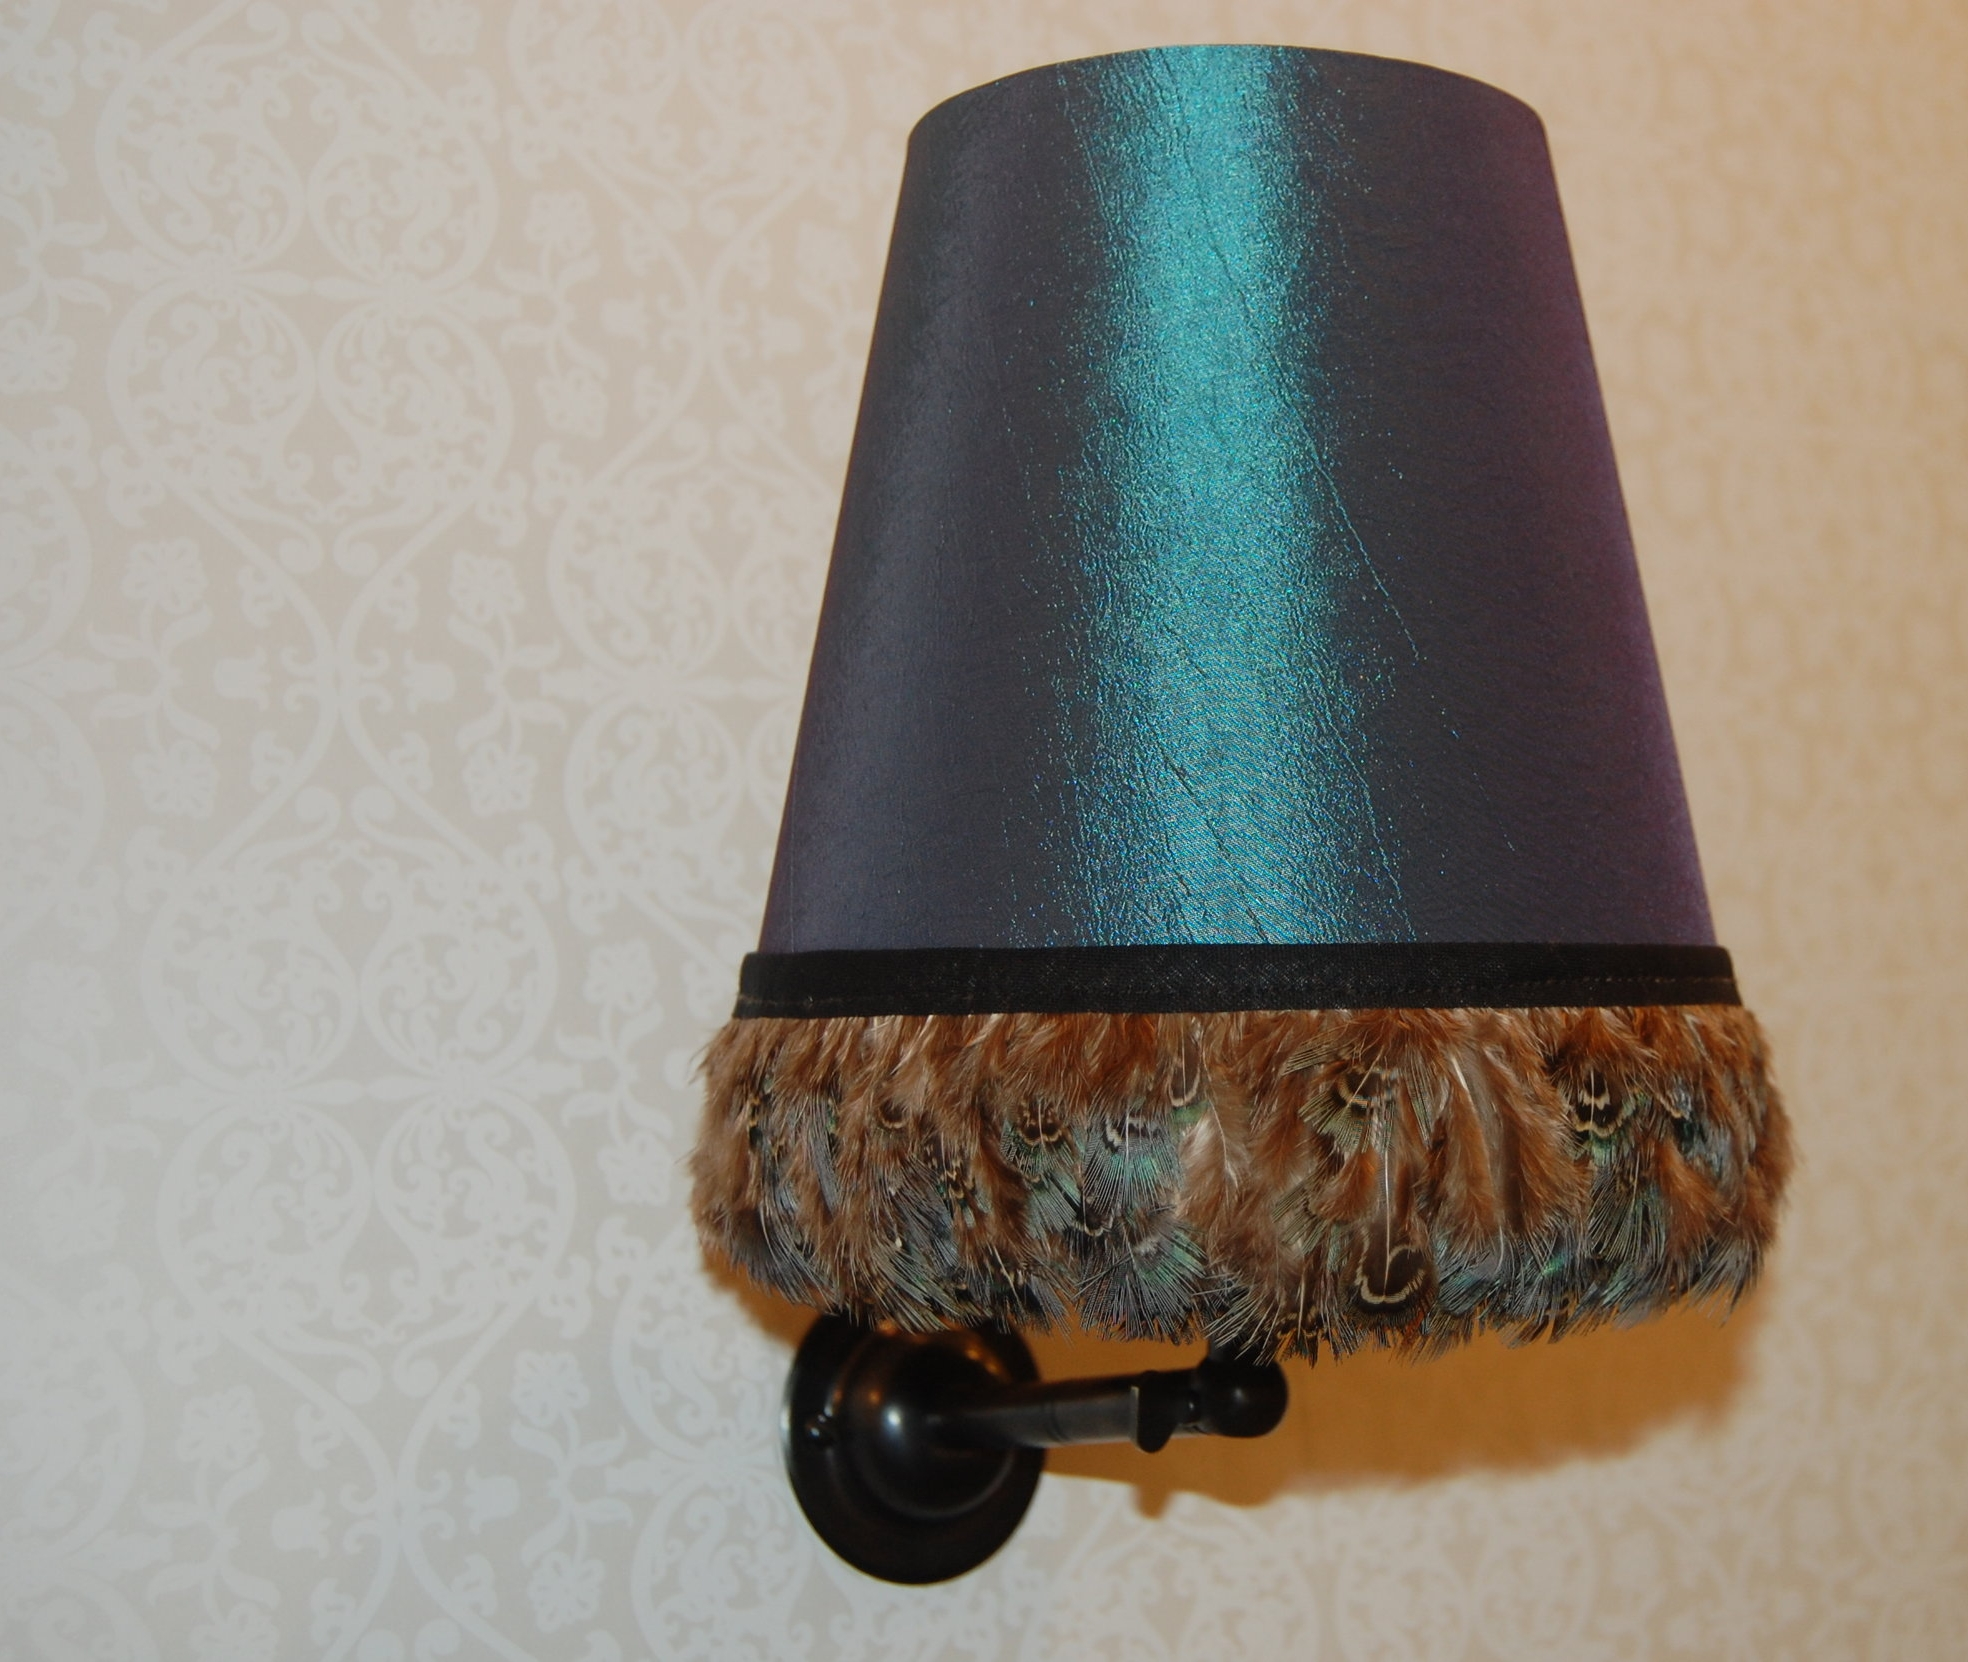 Small light fittings